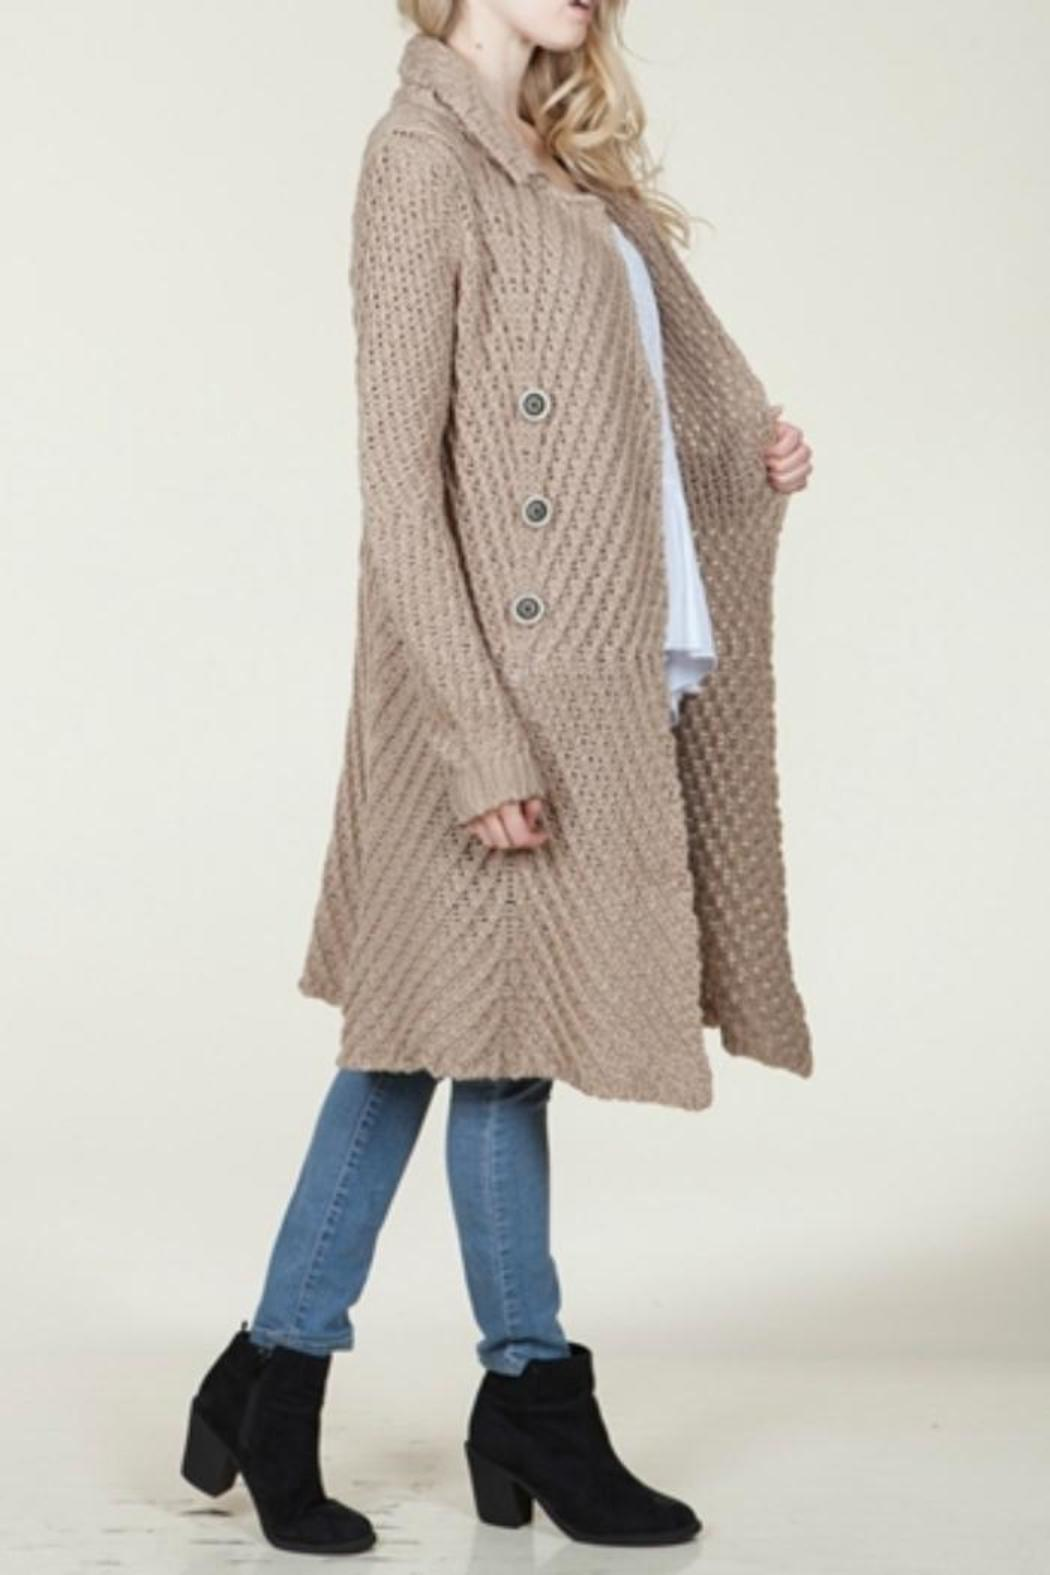 Shop for long coat cardigan online at Target. Free shipping on purchases over $35 and save 5% every day with your Target REDcard.